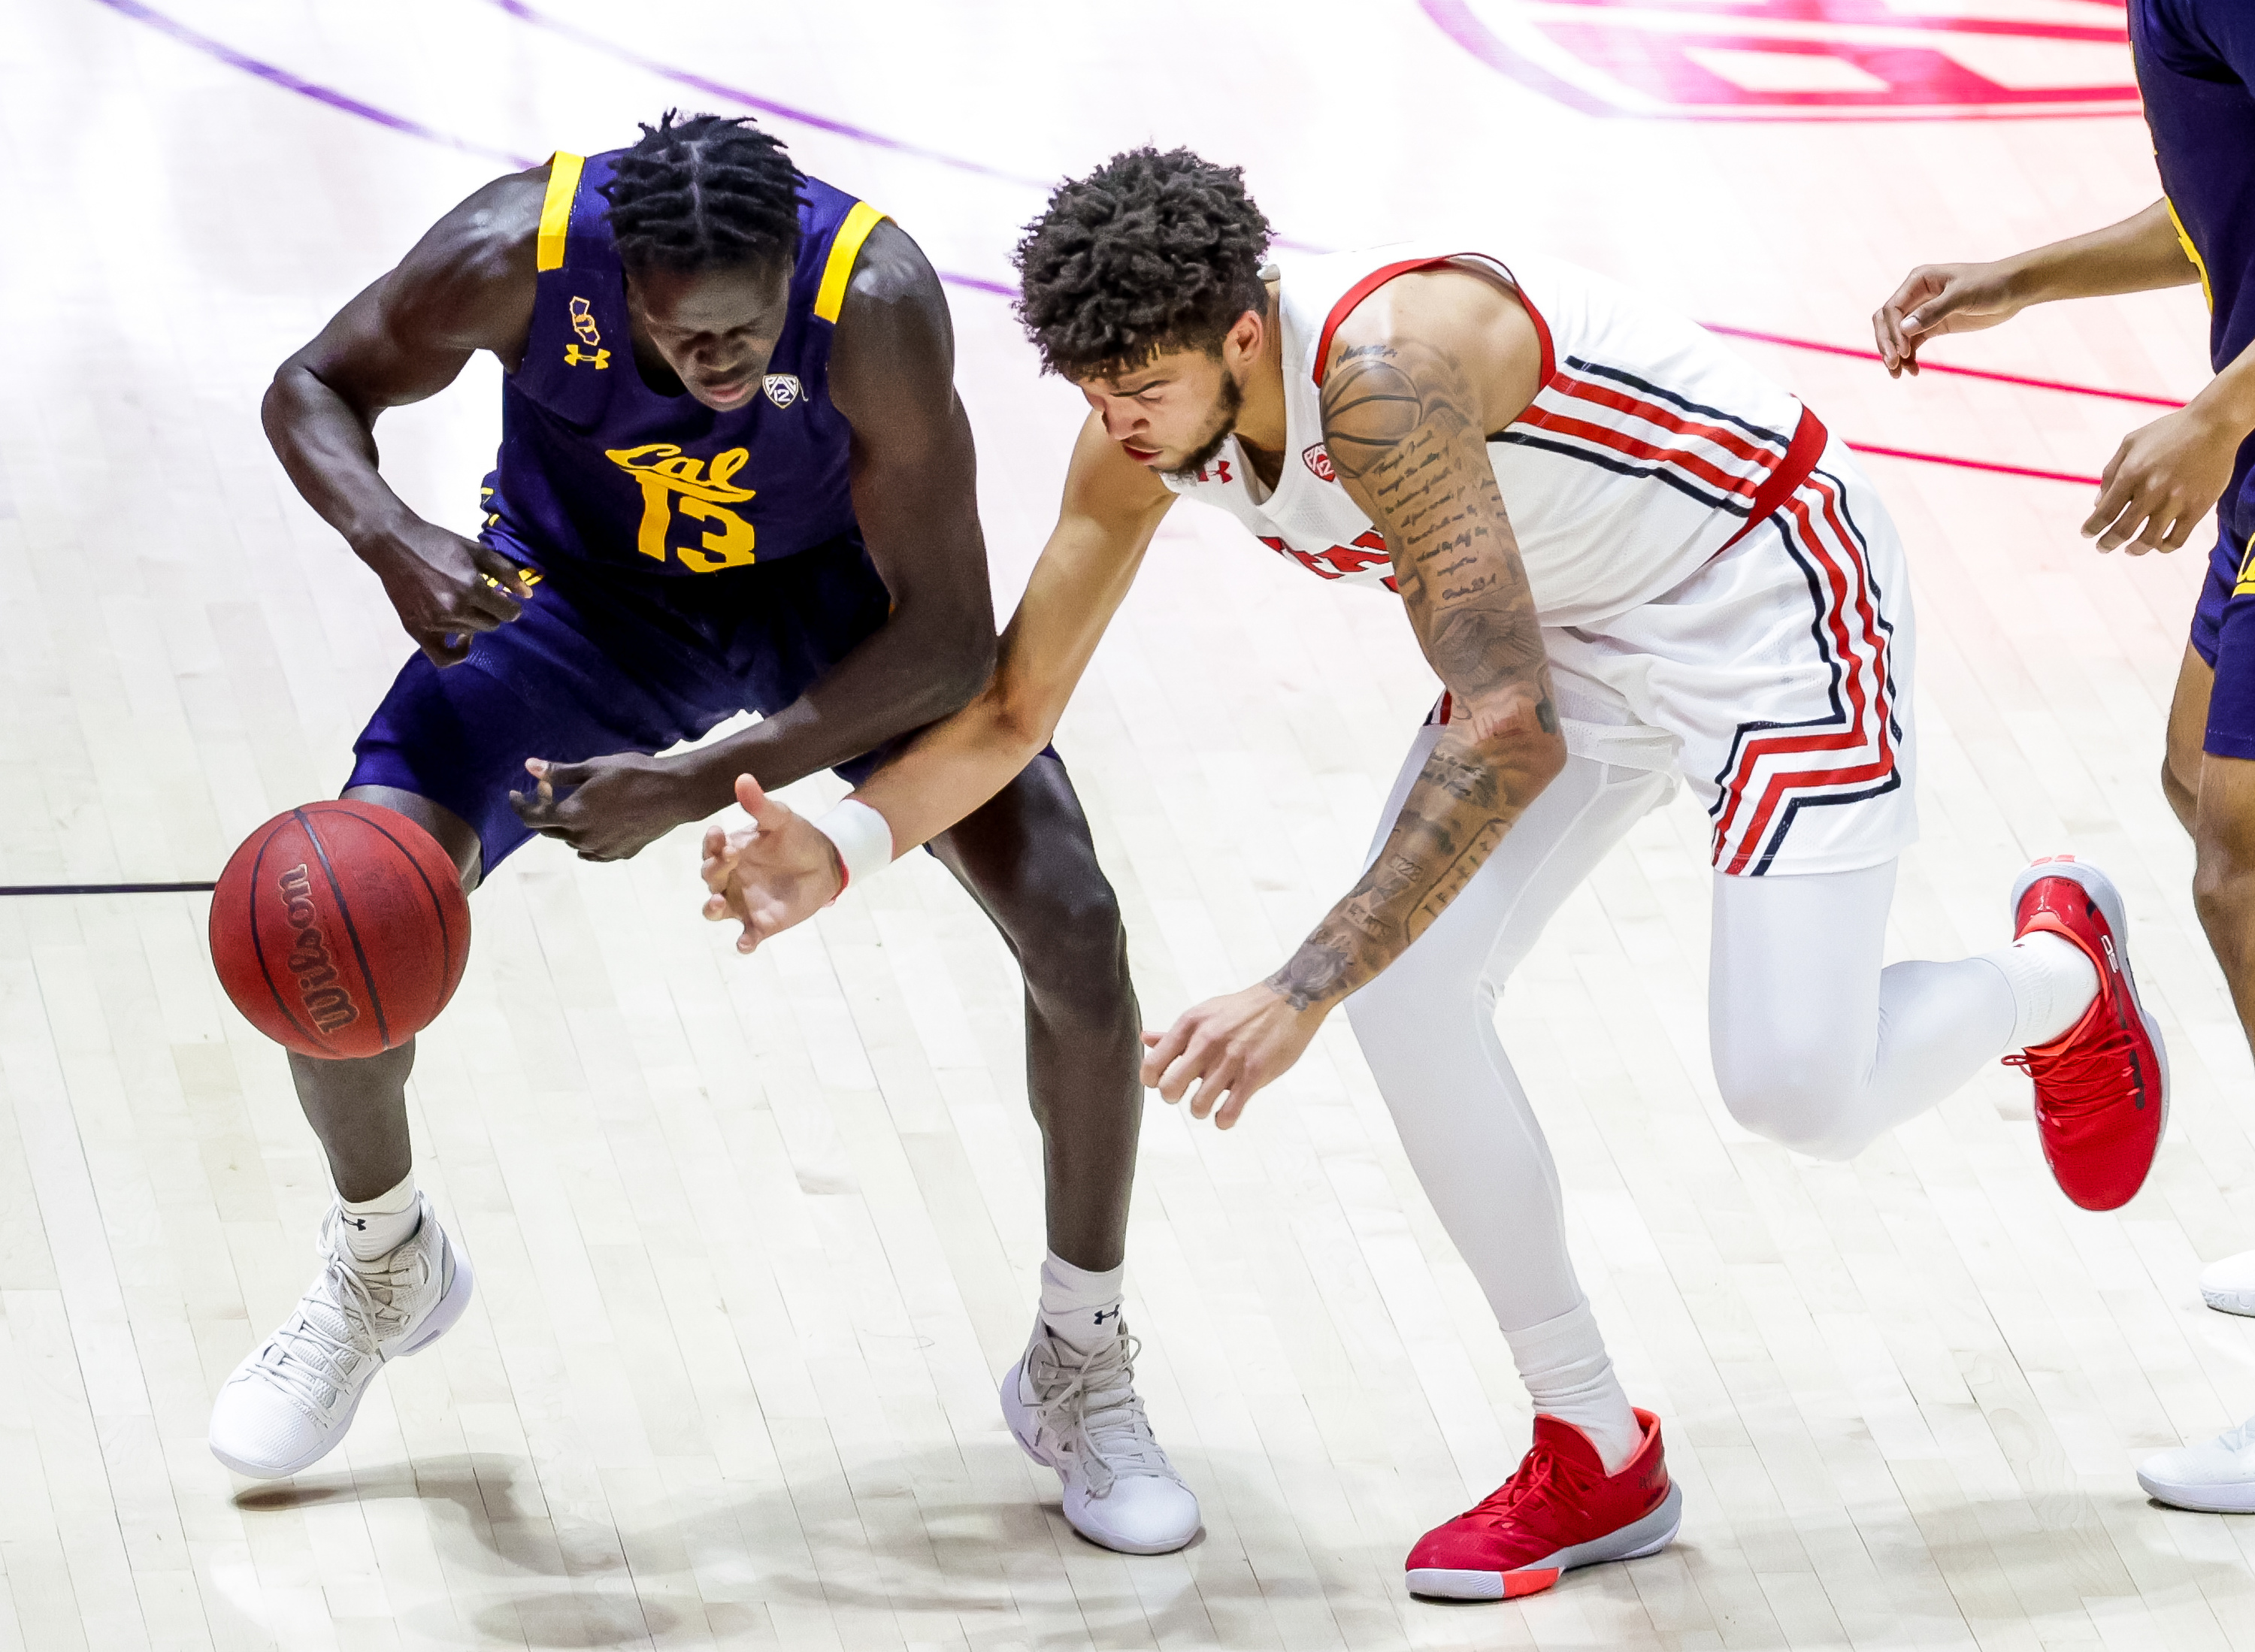 Utah Utes forward Timmy Allen (1) knocks the ball from California Golden Bears forward Kuany Kuany (13) during the game at the Huntsman Center in Salt Lake City on Saturday, Jan. 16, 2021.